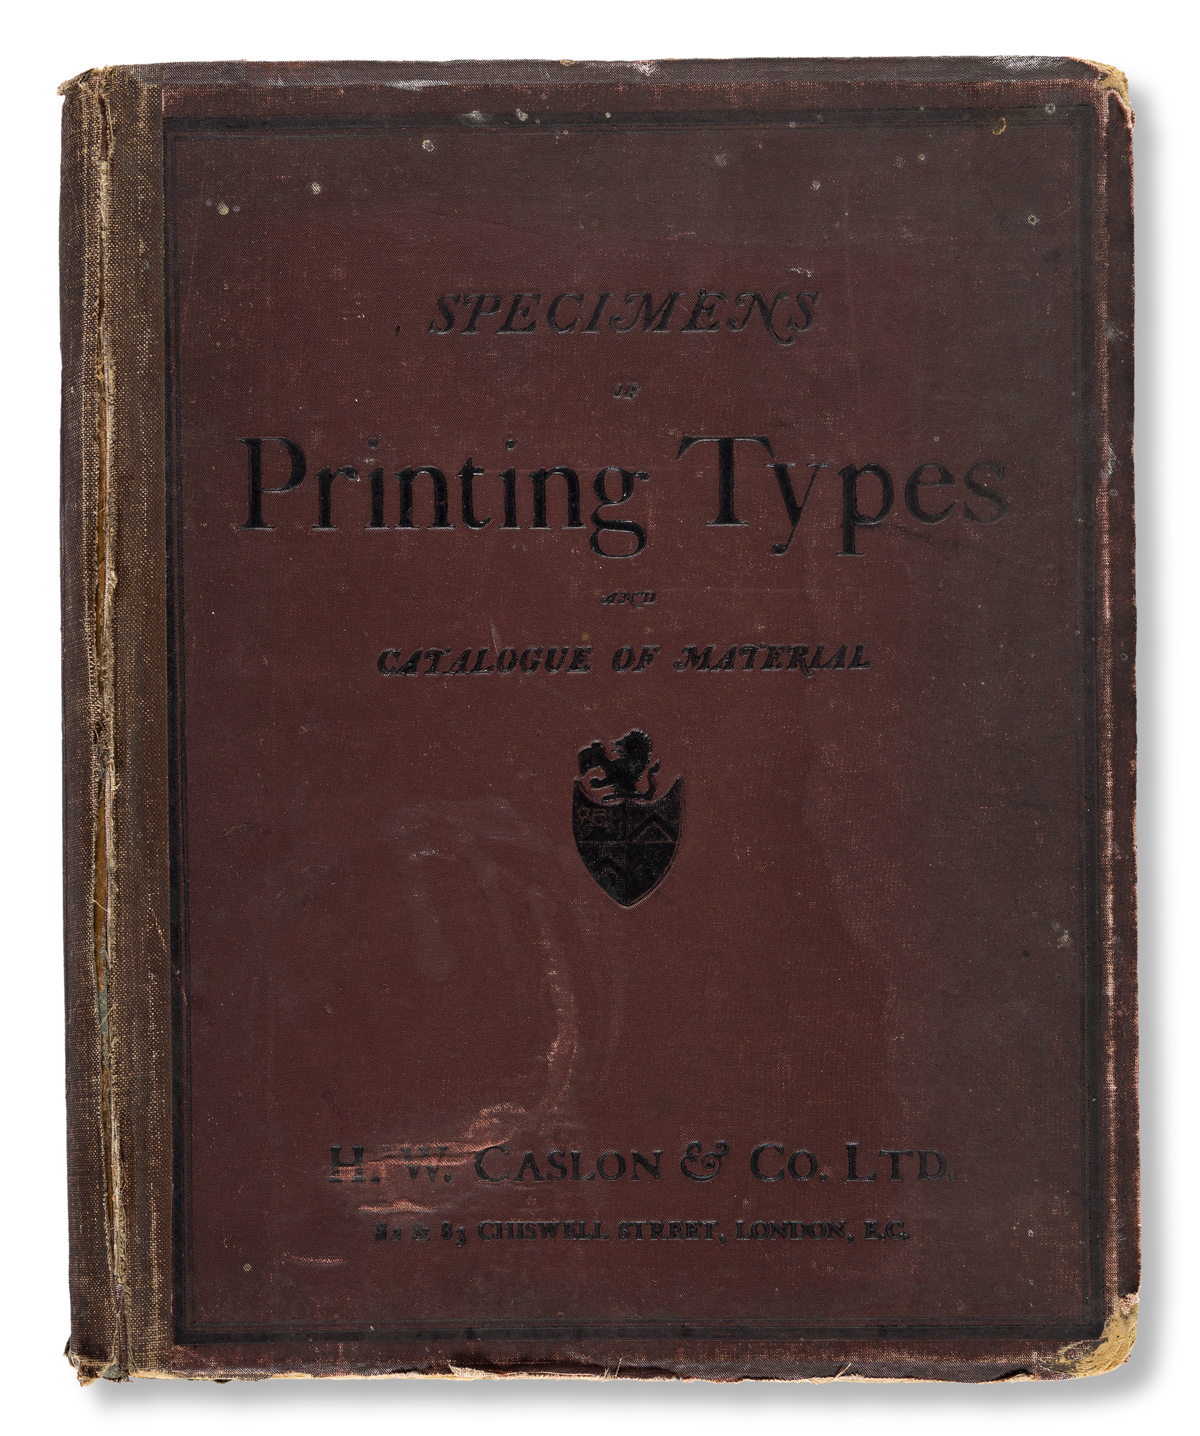 [SPECIMEN BOOK — H. W. CASLON]. Specimens of Types & Borders and Illustrated Catalogue of Printers' Joinery and Materials. London: H. W